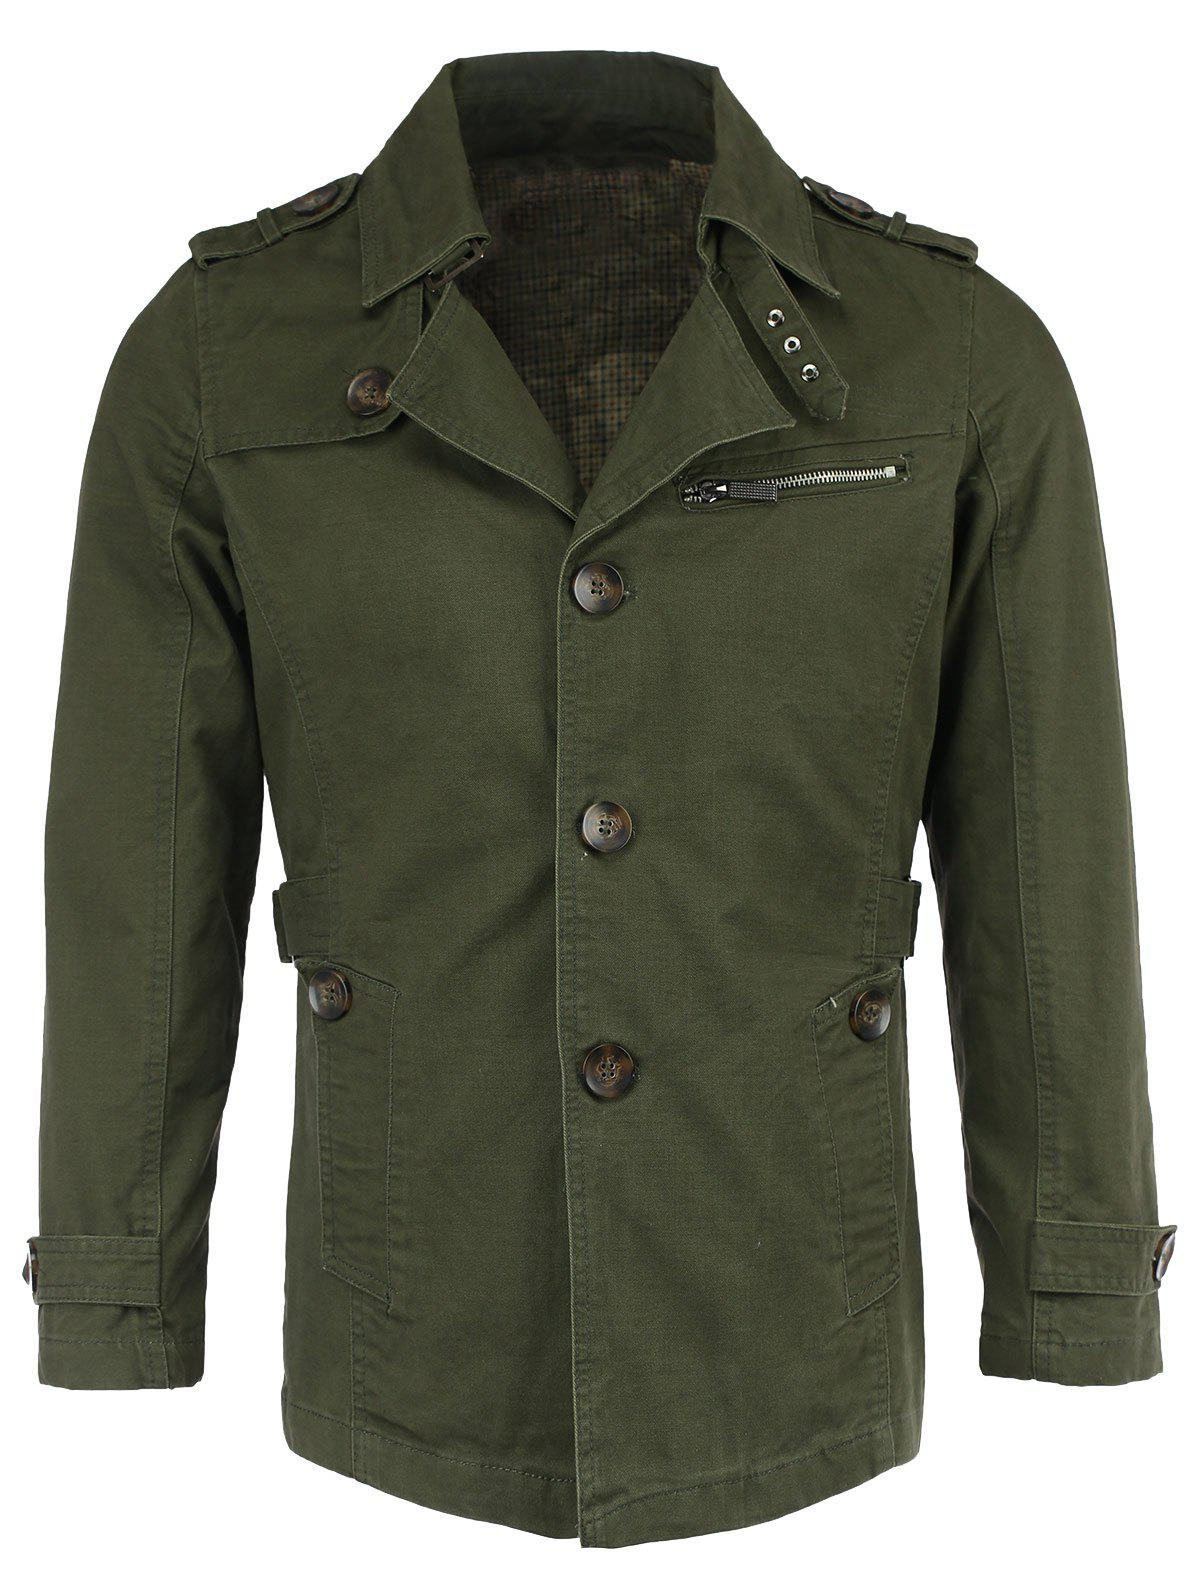 Buy Cotton Blends Epaulet Zipper Design Trench Turn-Down Collar Coat ARMY GREEN